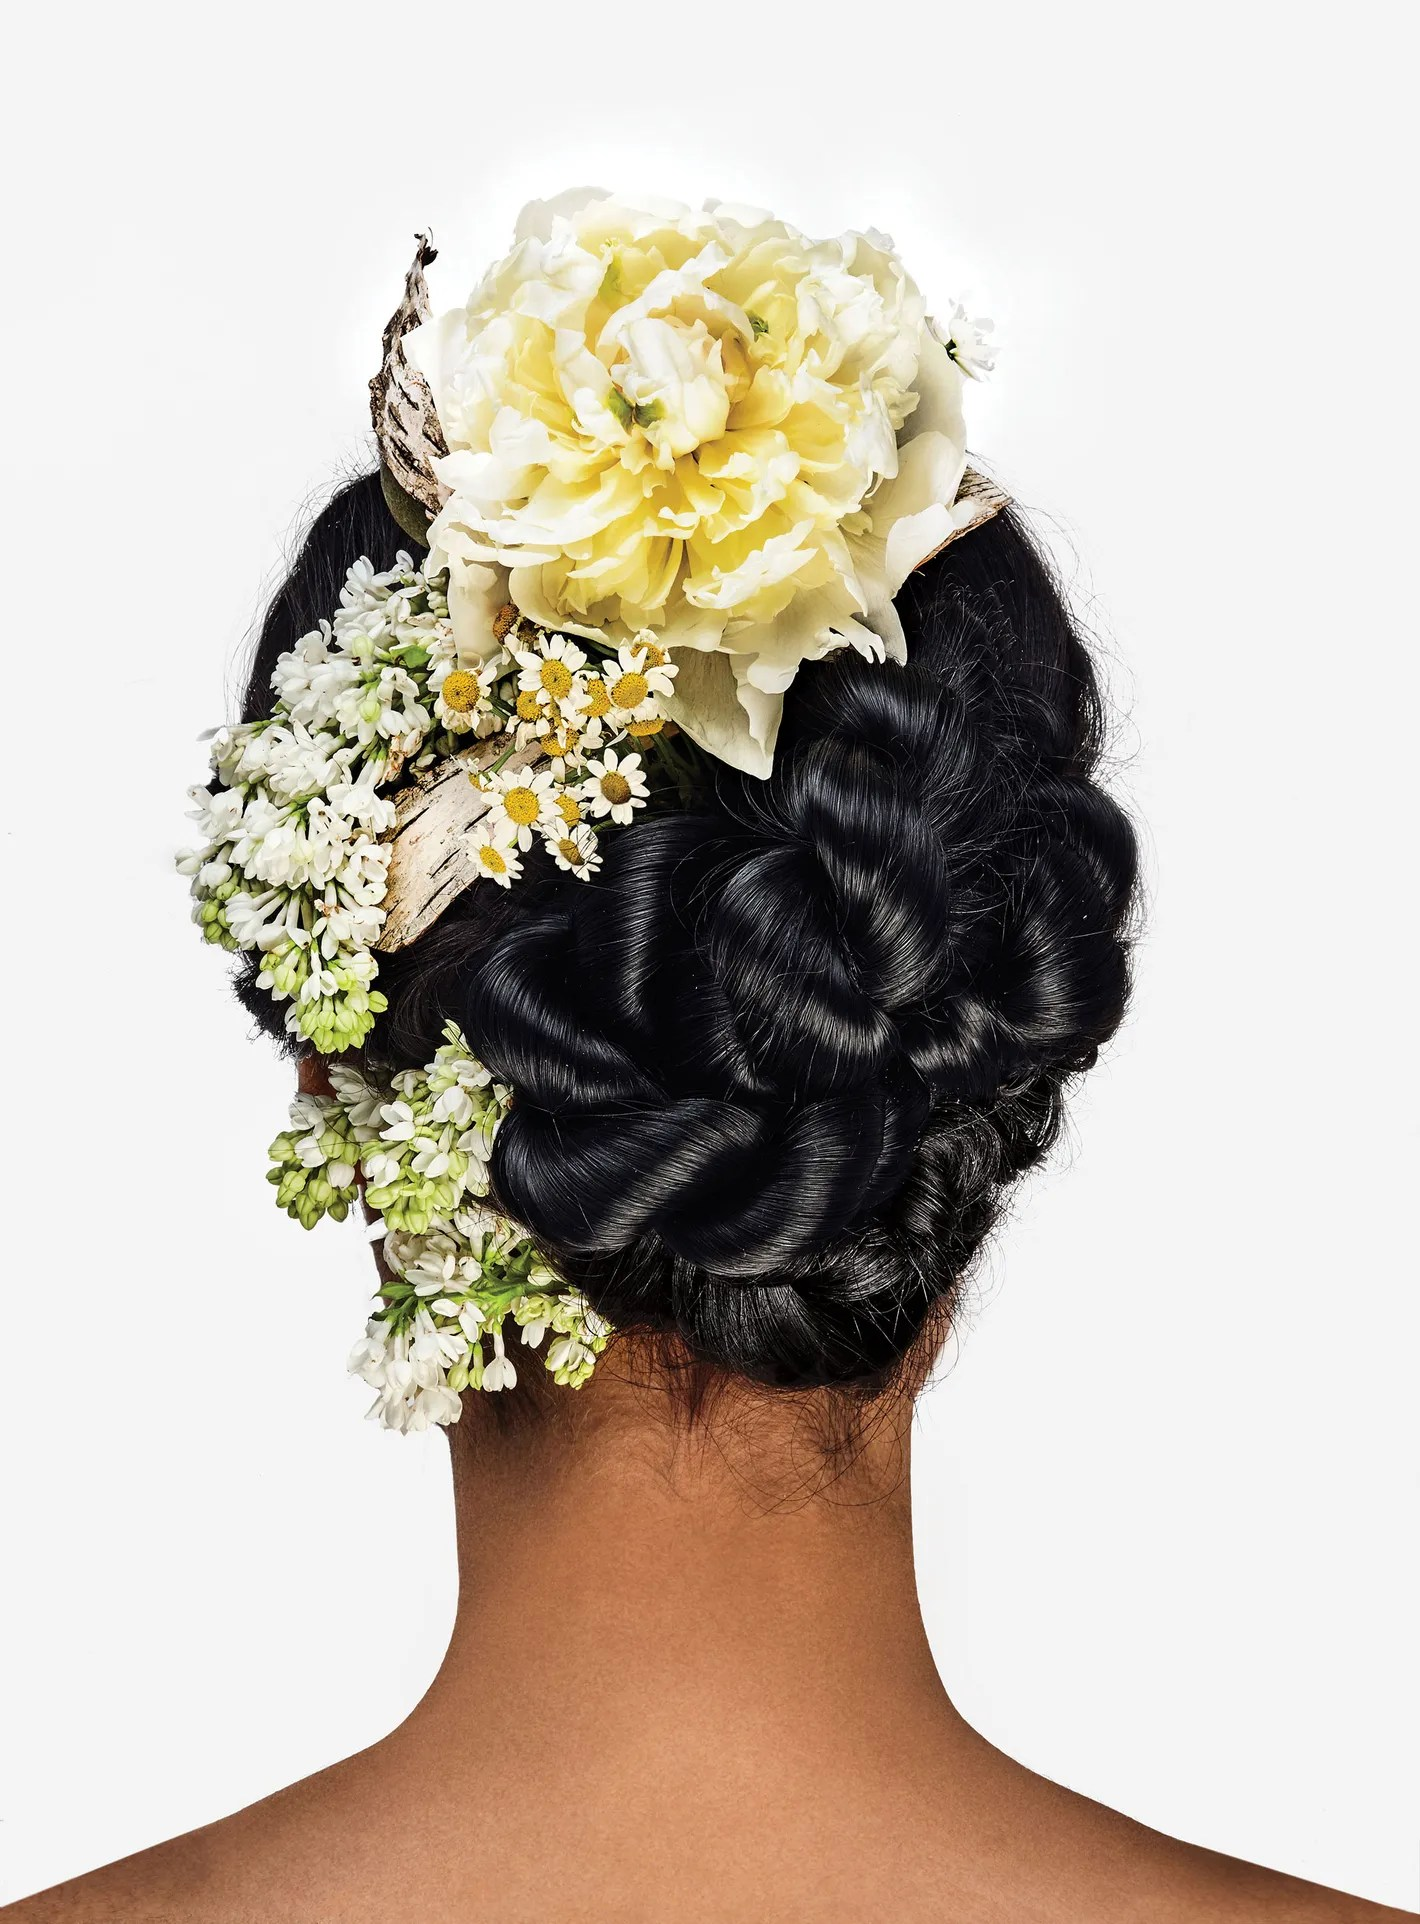 5 Ways To Wear Flowers In Your Hair Without Looking Like A